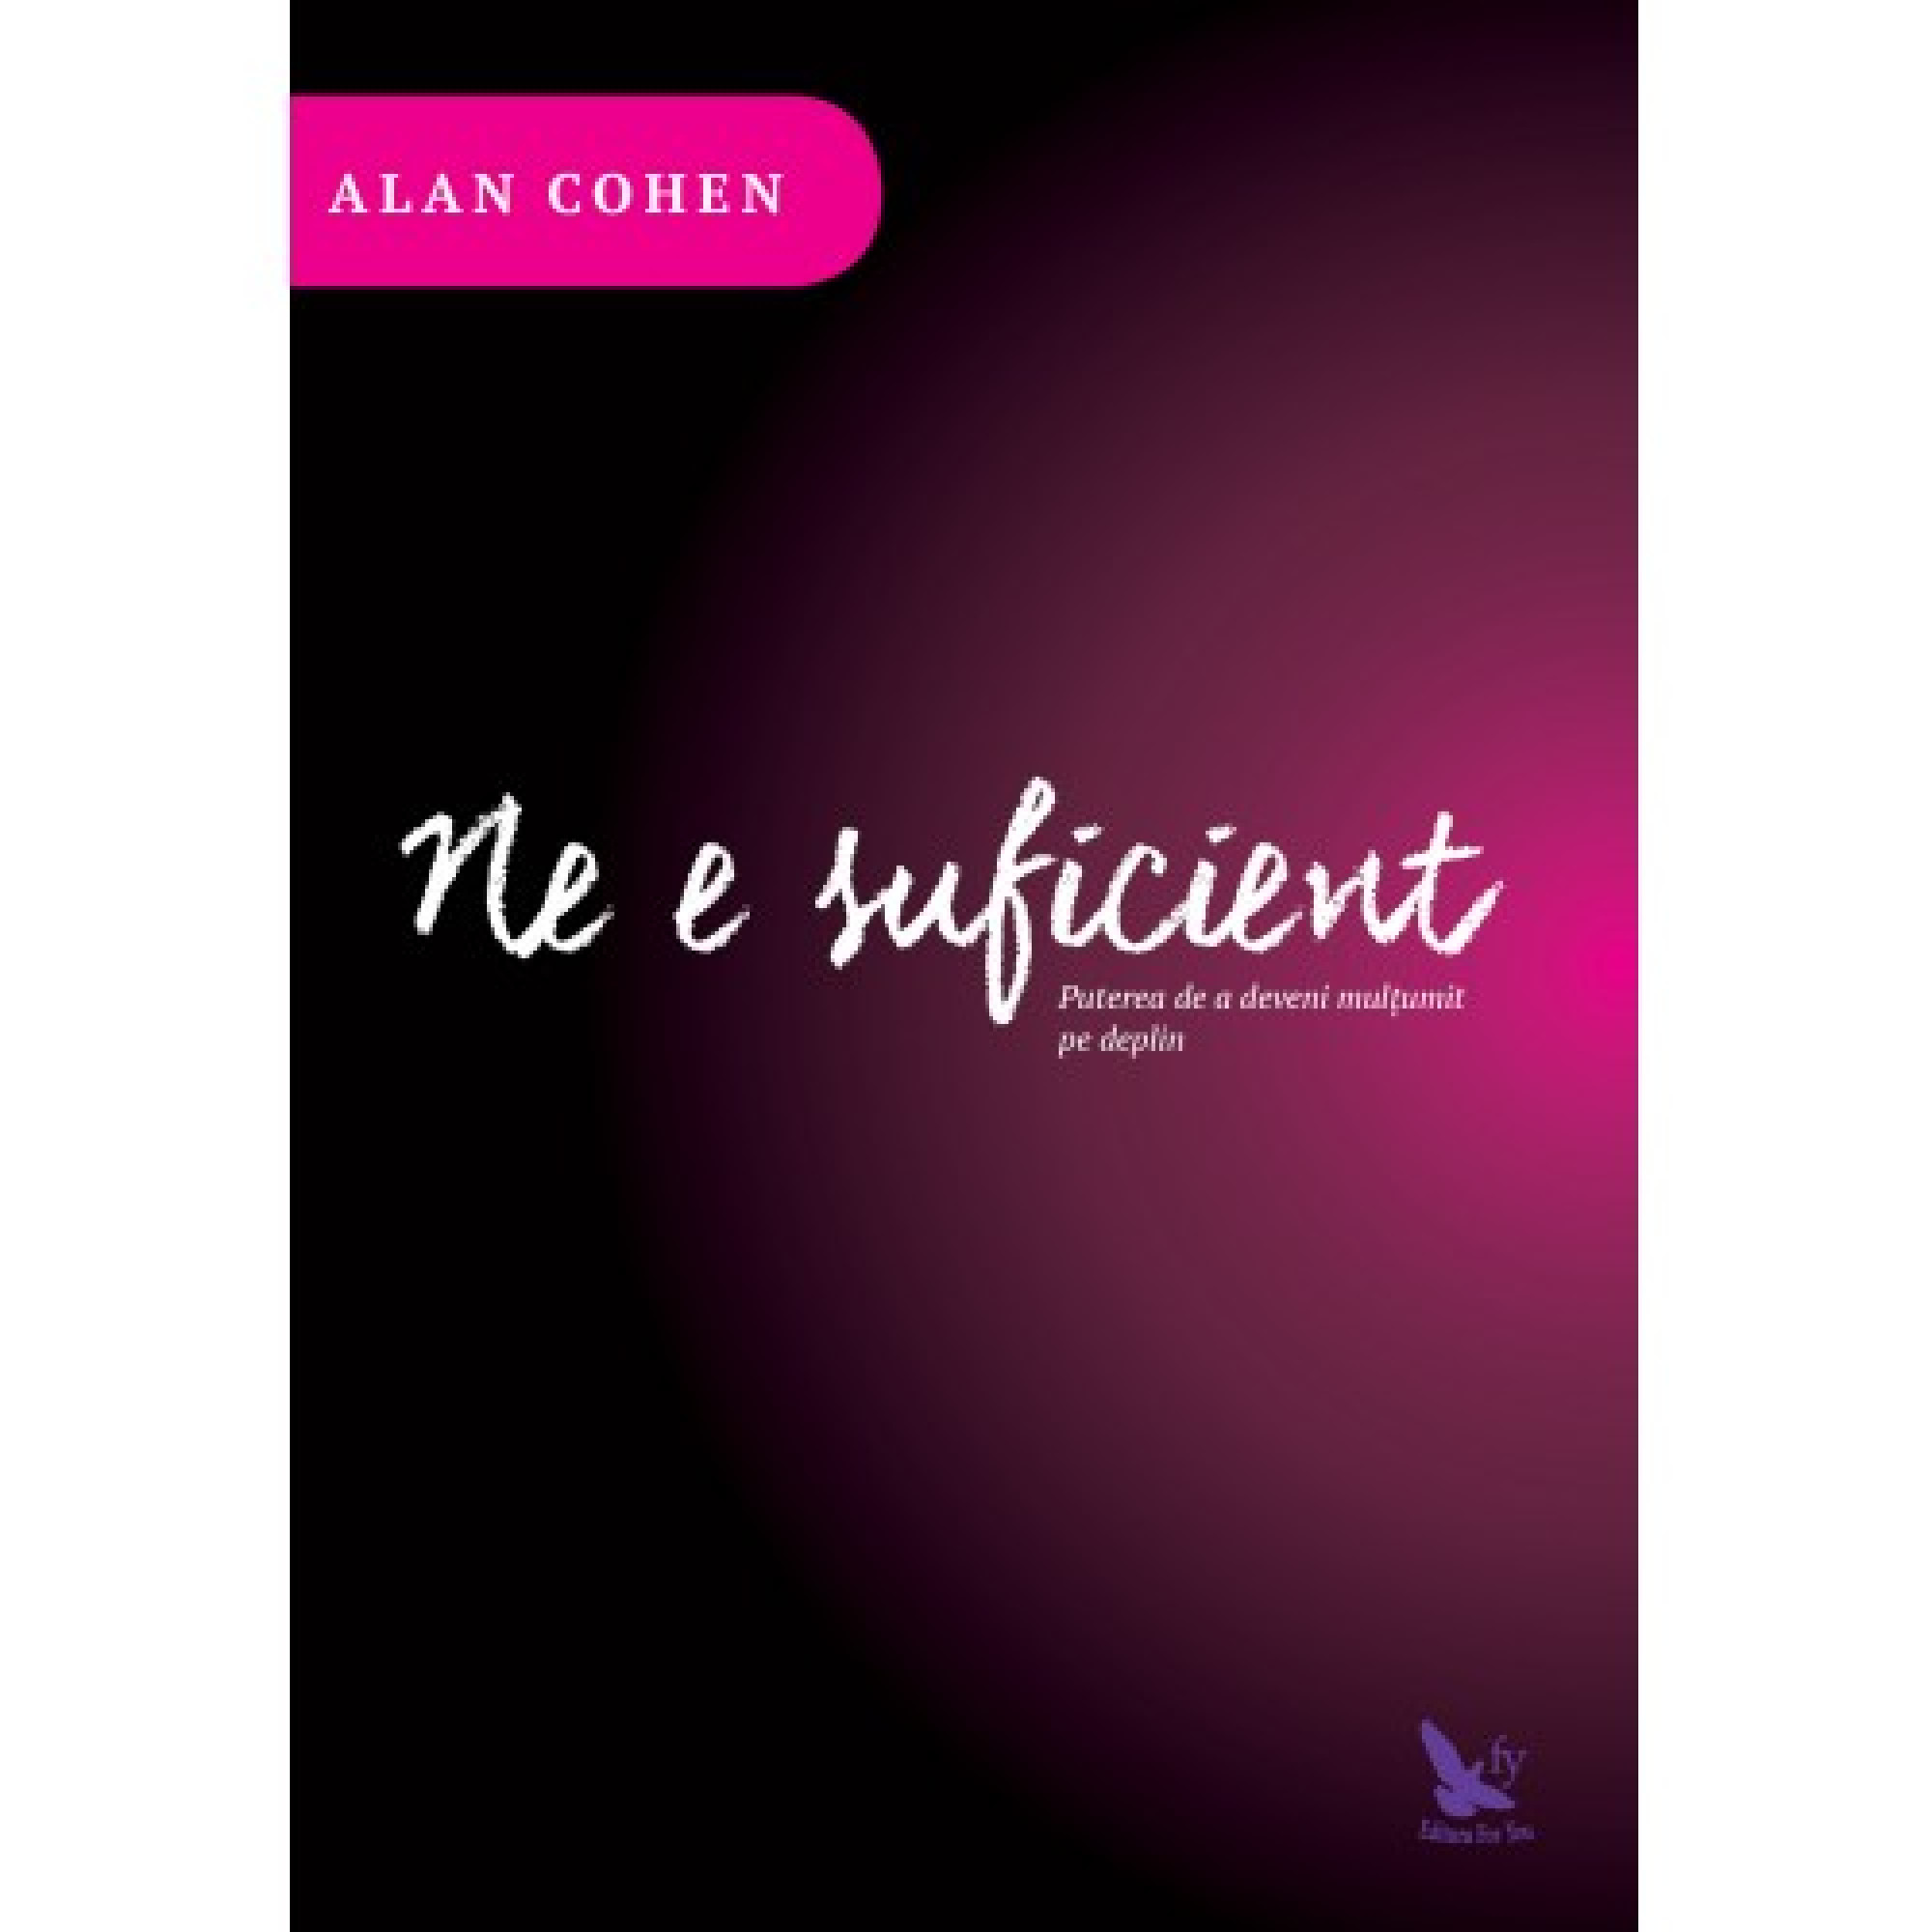 Ne e suficient; Alan Cohen